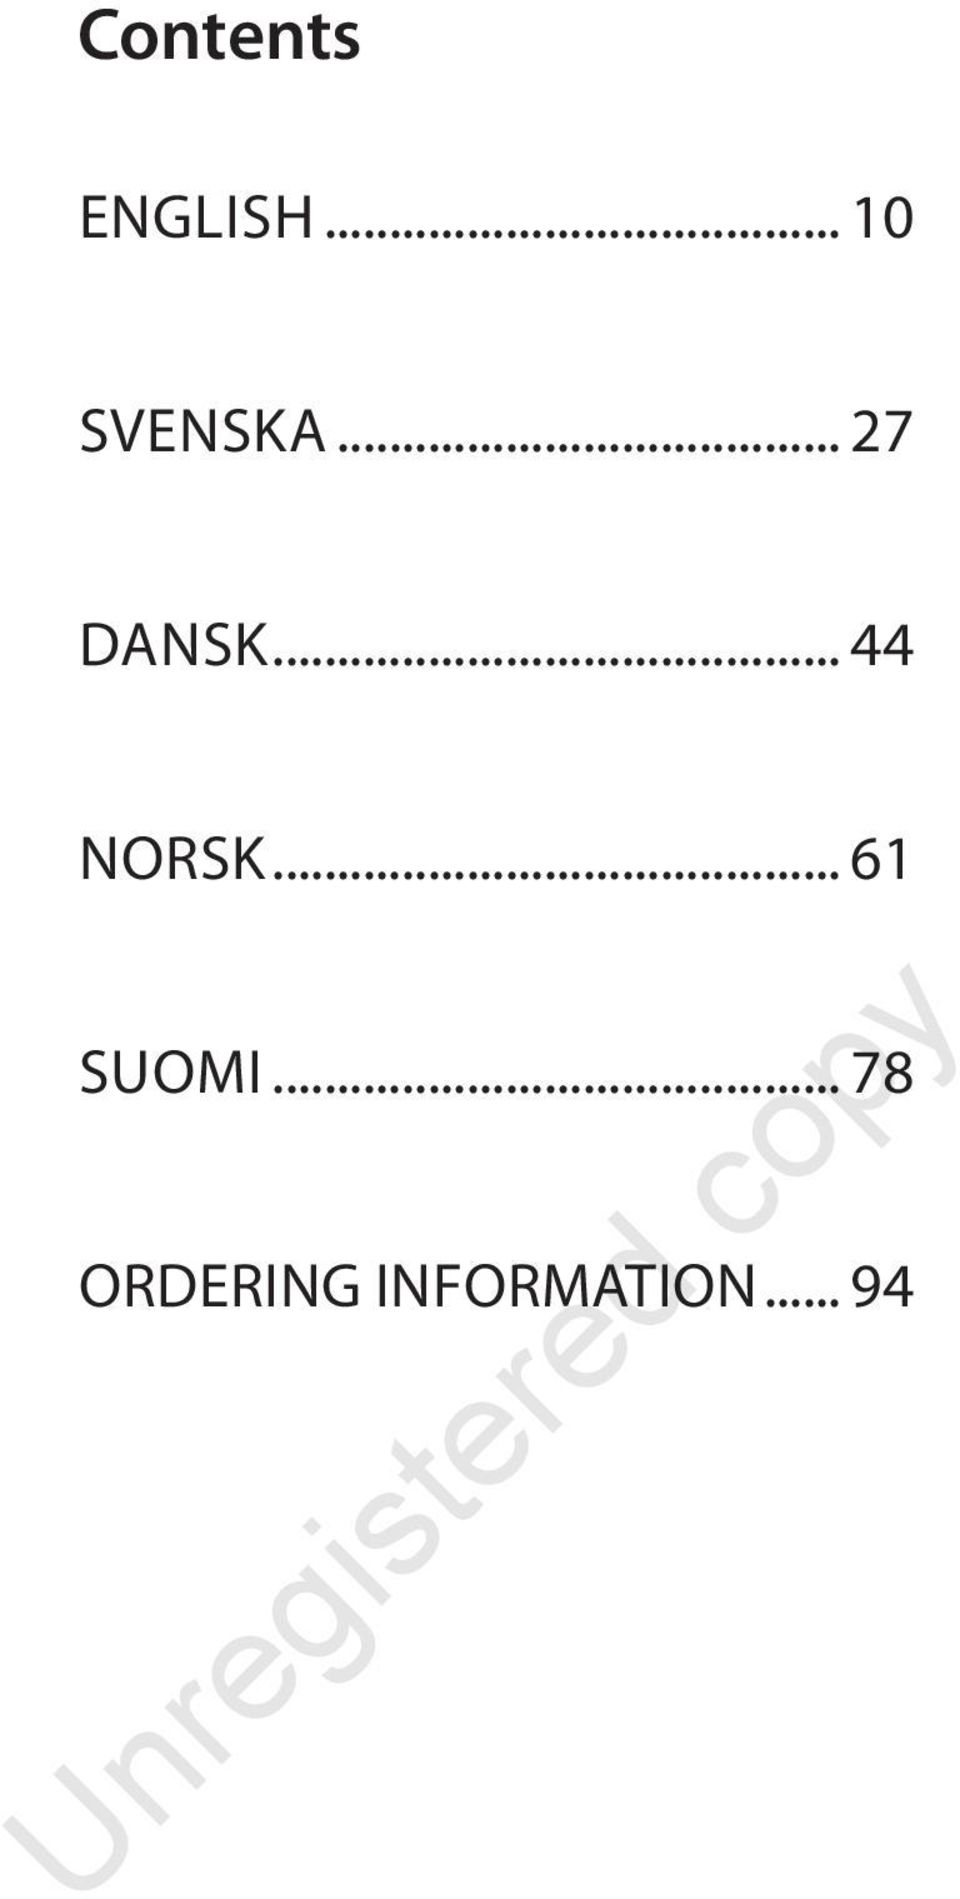 .. 44 NORSK... 61 SUOMI.